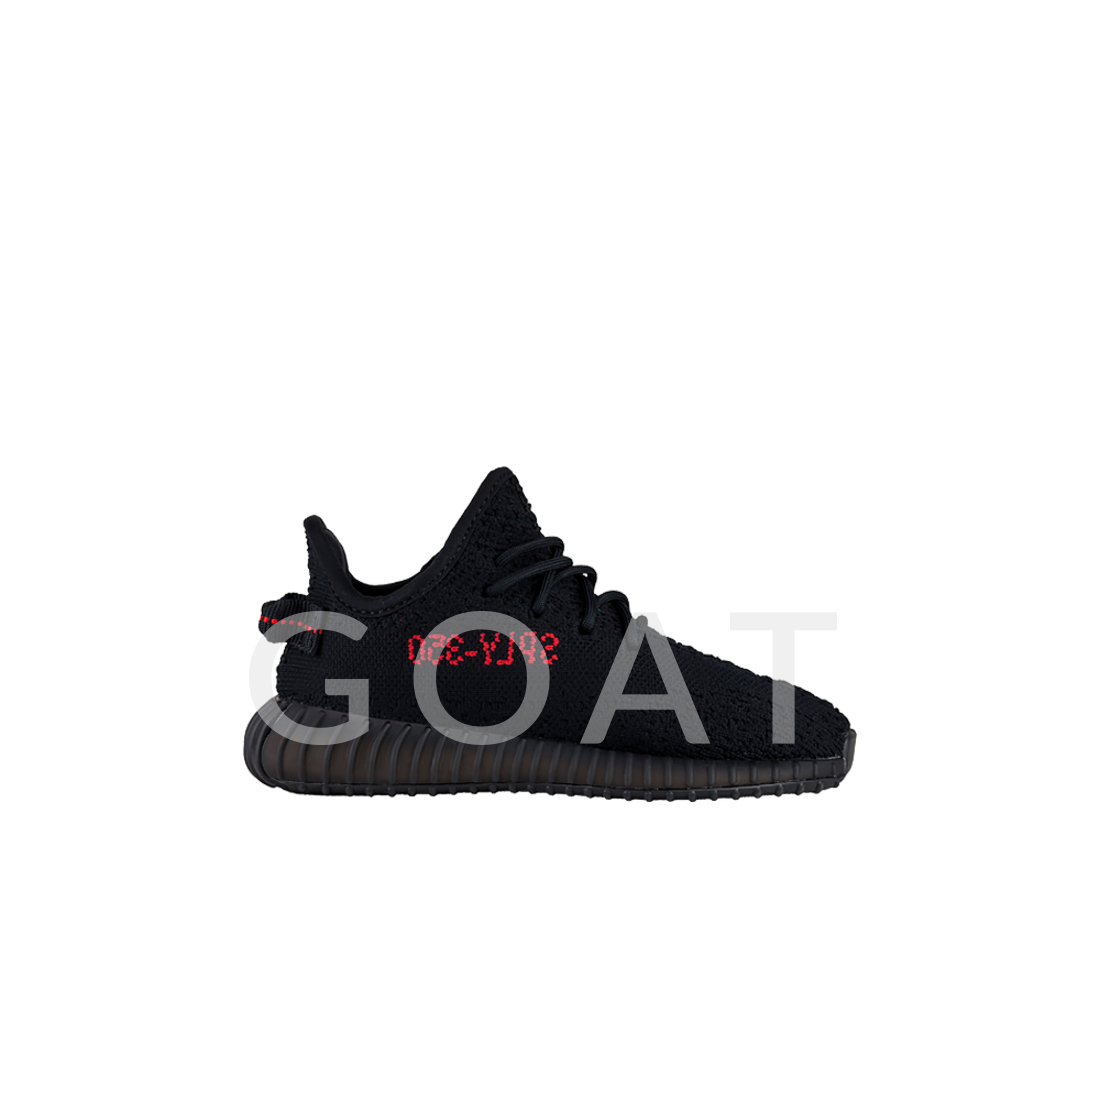 2c1eee2d Yeezy Boost 350 V2 Infant Bred - Adidas - BB6372 - core black/core black/red  | GOAT